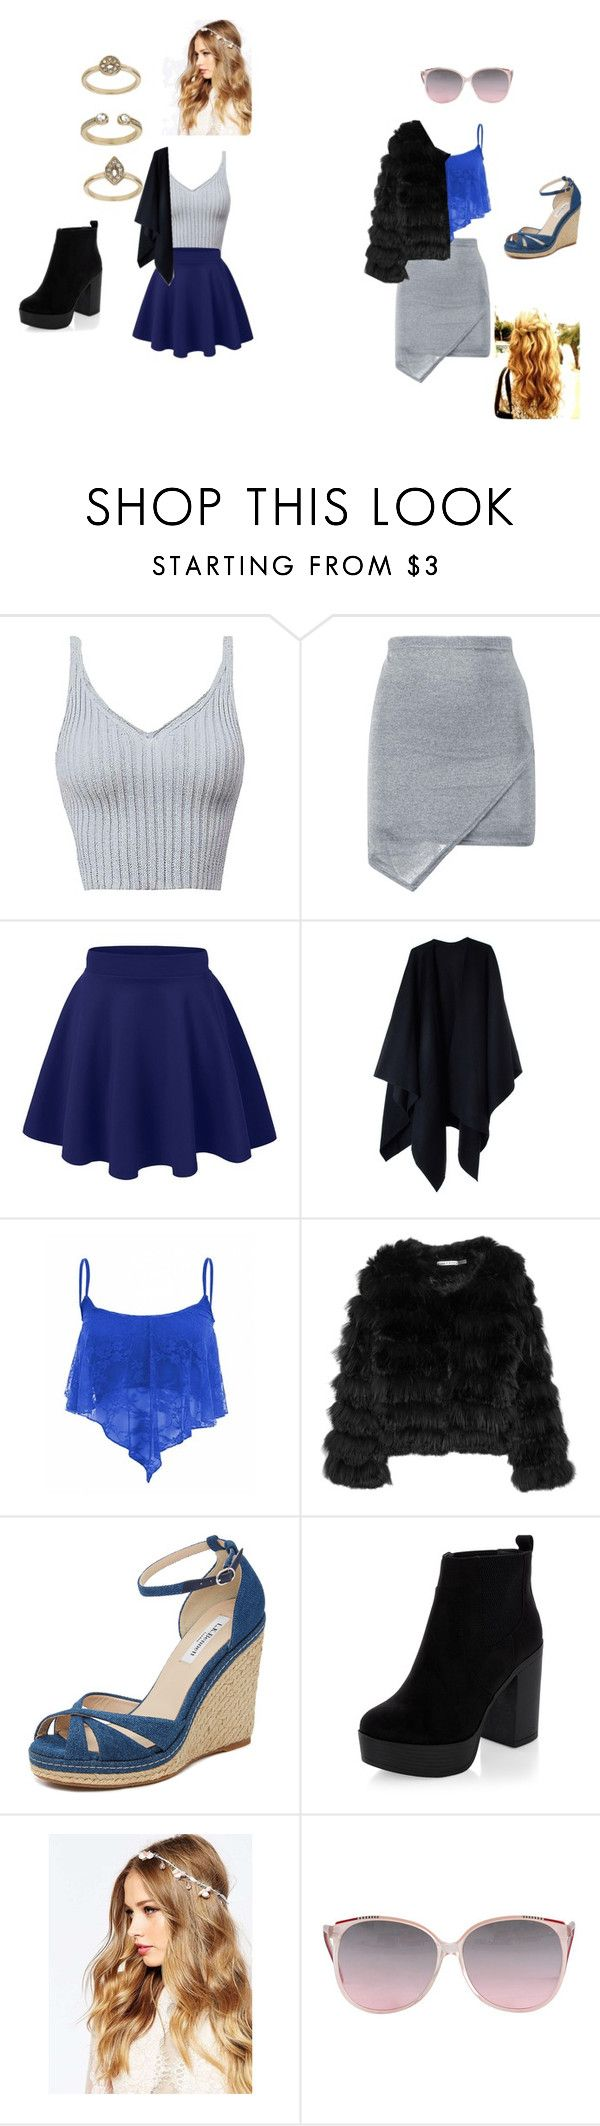 """""""Always classy...... never trashy...... always sassy......."""" by danielle-bff-renee on Polyvore featuring Acne Studios, Alice + Olivia, L.K.Bennett, New Look, ASOS and Topshop"""